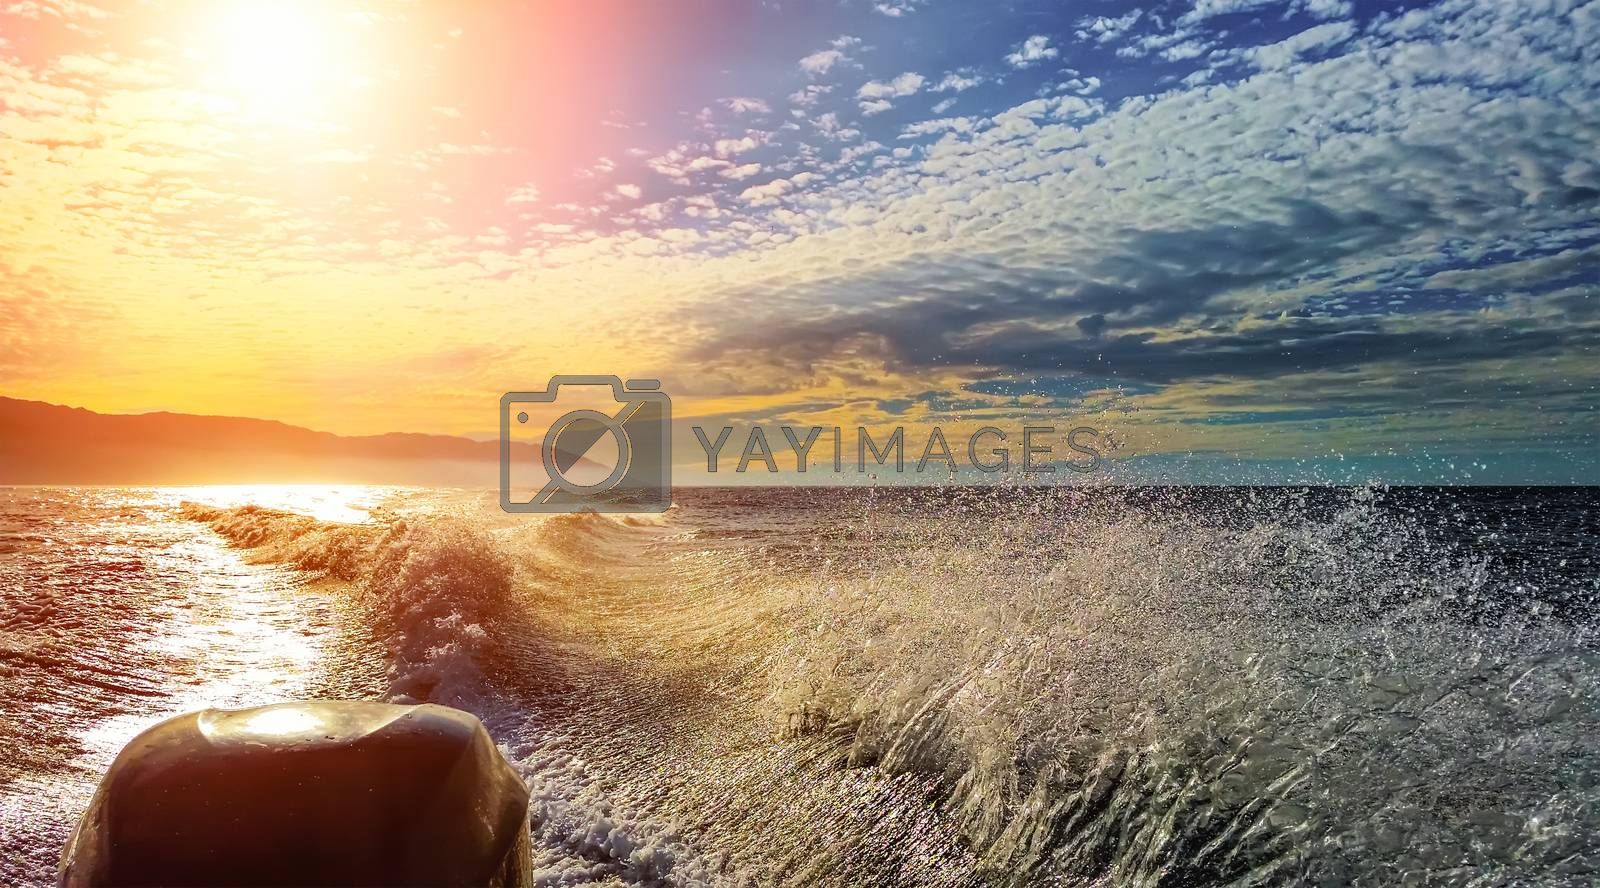 A view from a speedboat ripping water surface, and the Sun reflecting in the ocean.